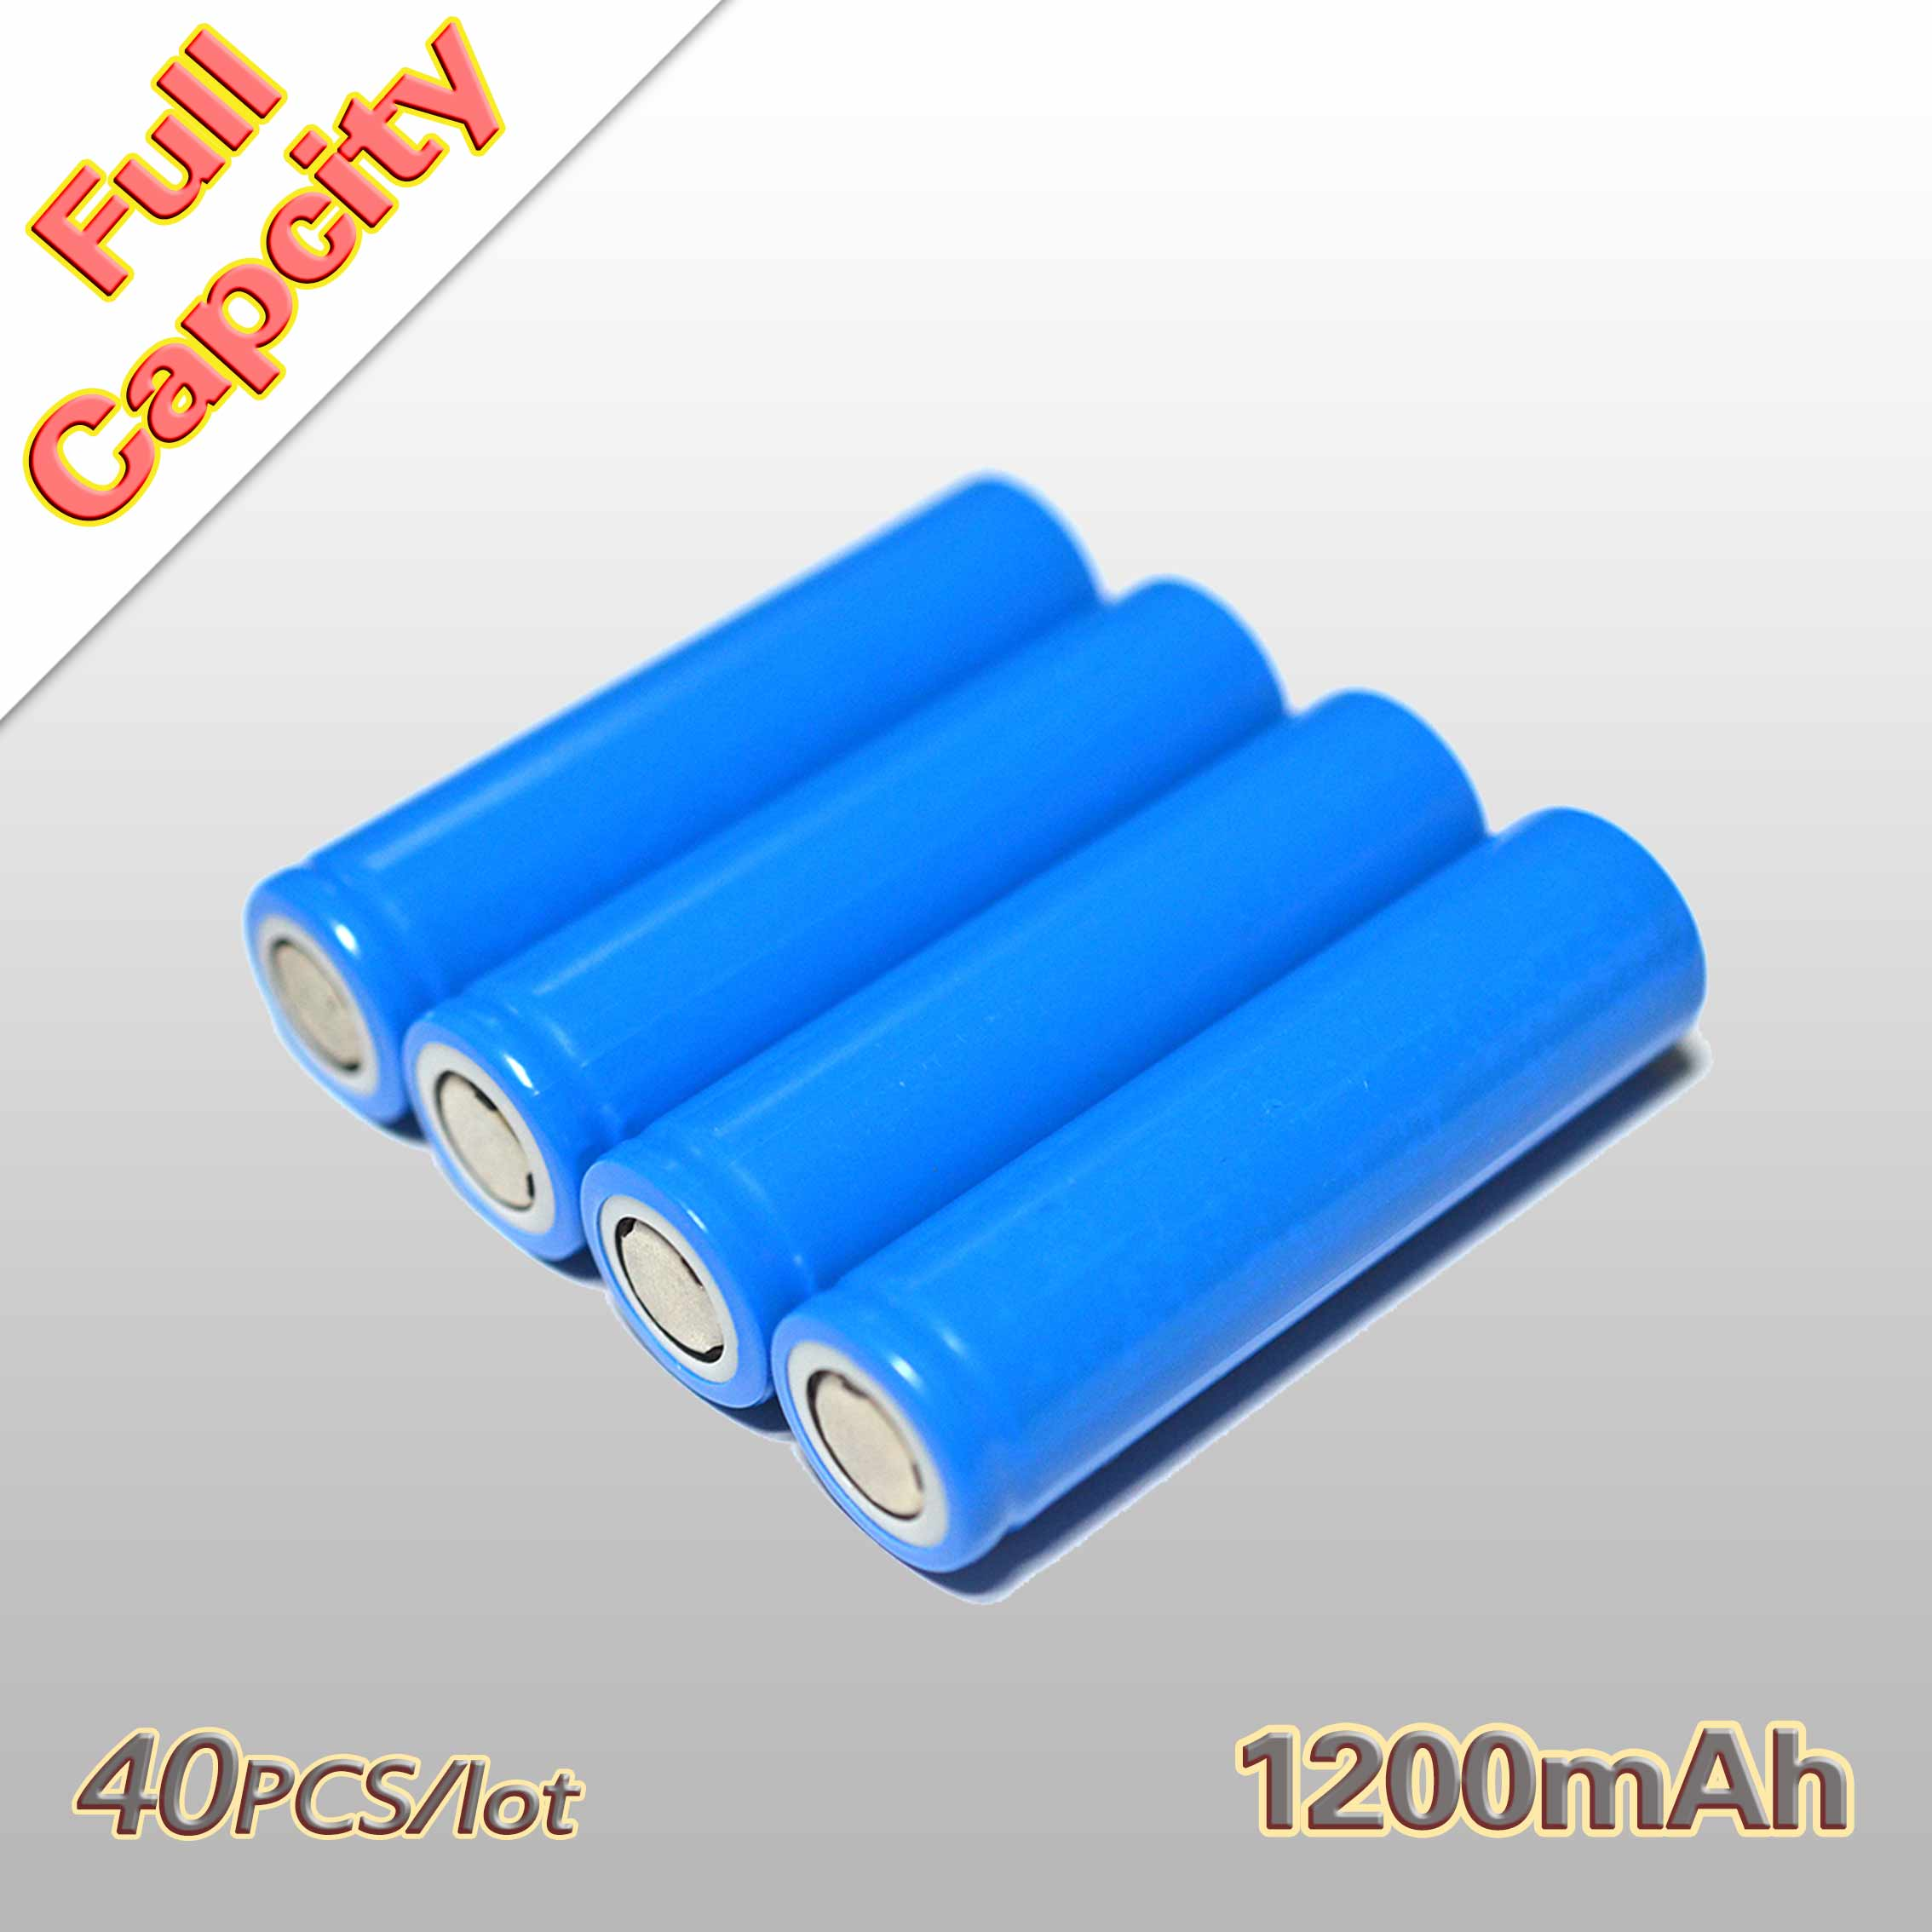 40PCS 3.7V Real capacity: 1200mAh Rechargeable Battery 18650 Wholesale for the assembly mobile power notebook batteries etc.<br><br>Aliexpress